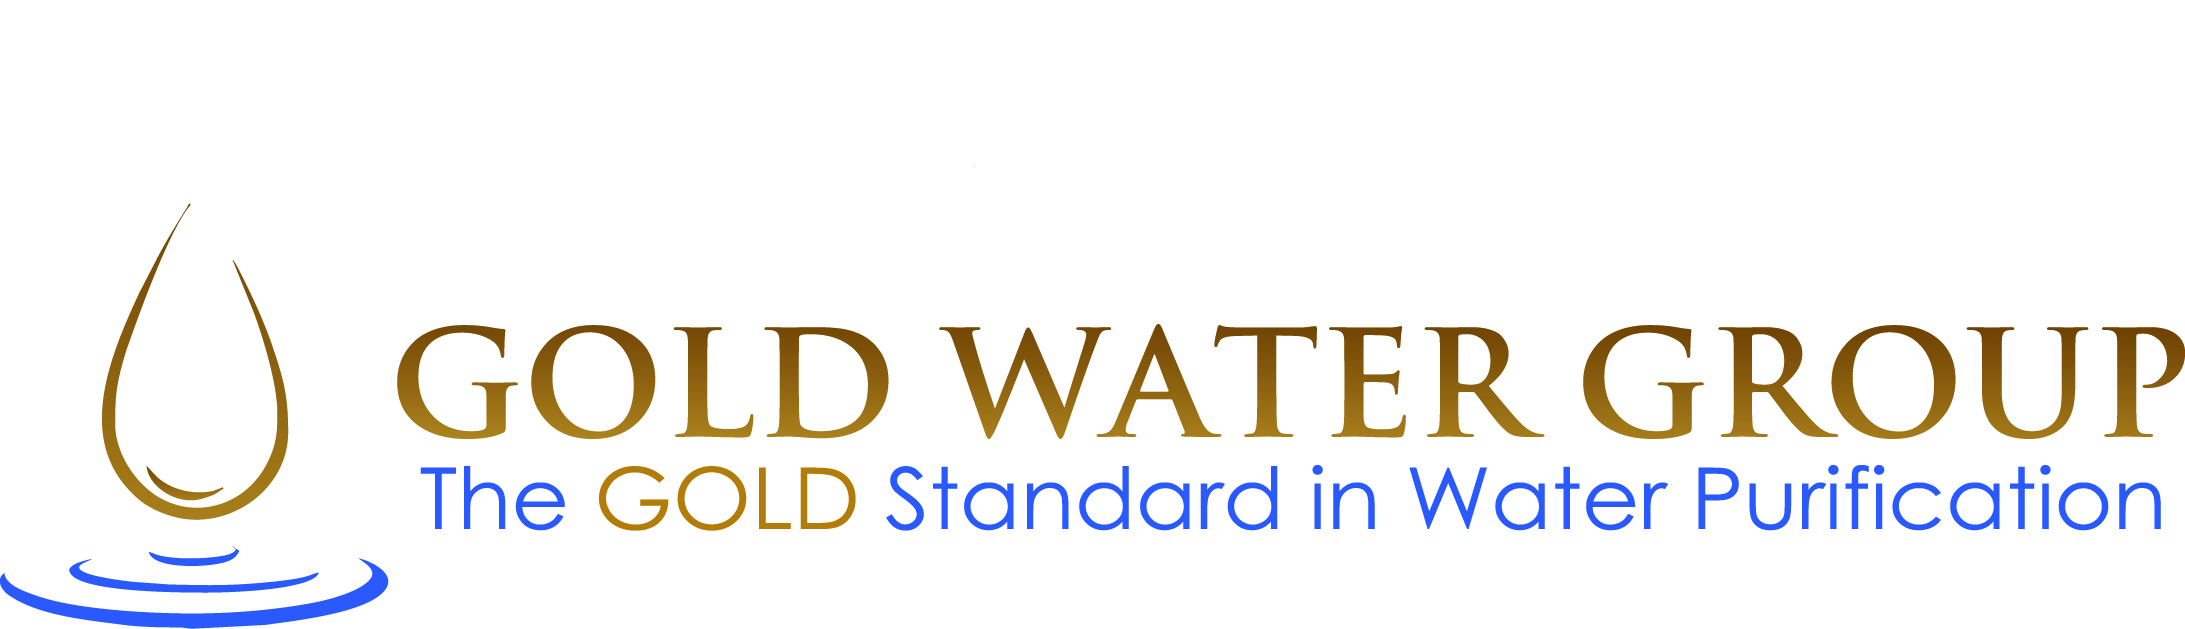 Gold Water Group